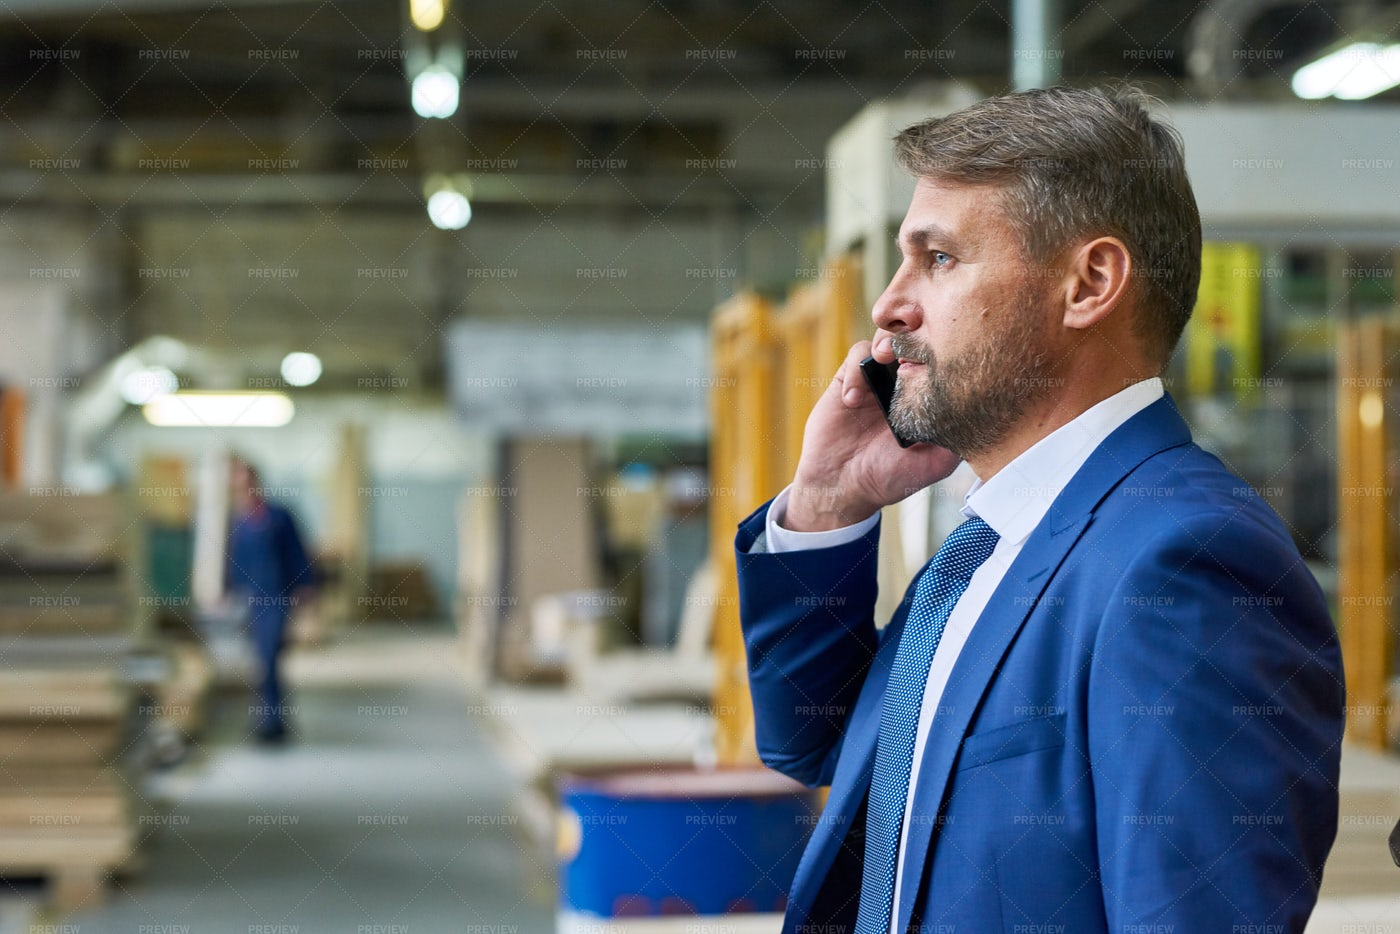 Manager Speaking By Phone In...: Stock Photos